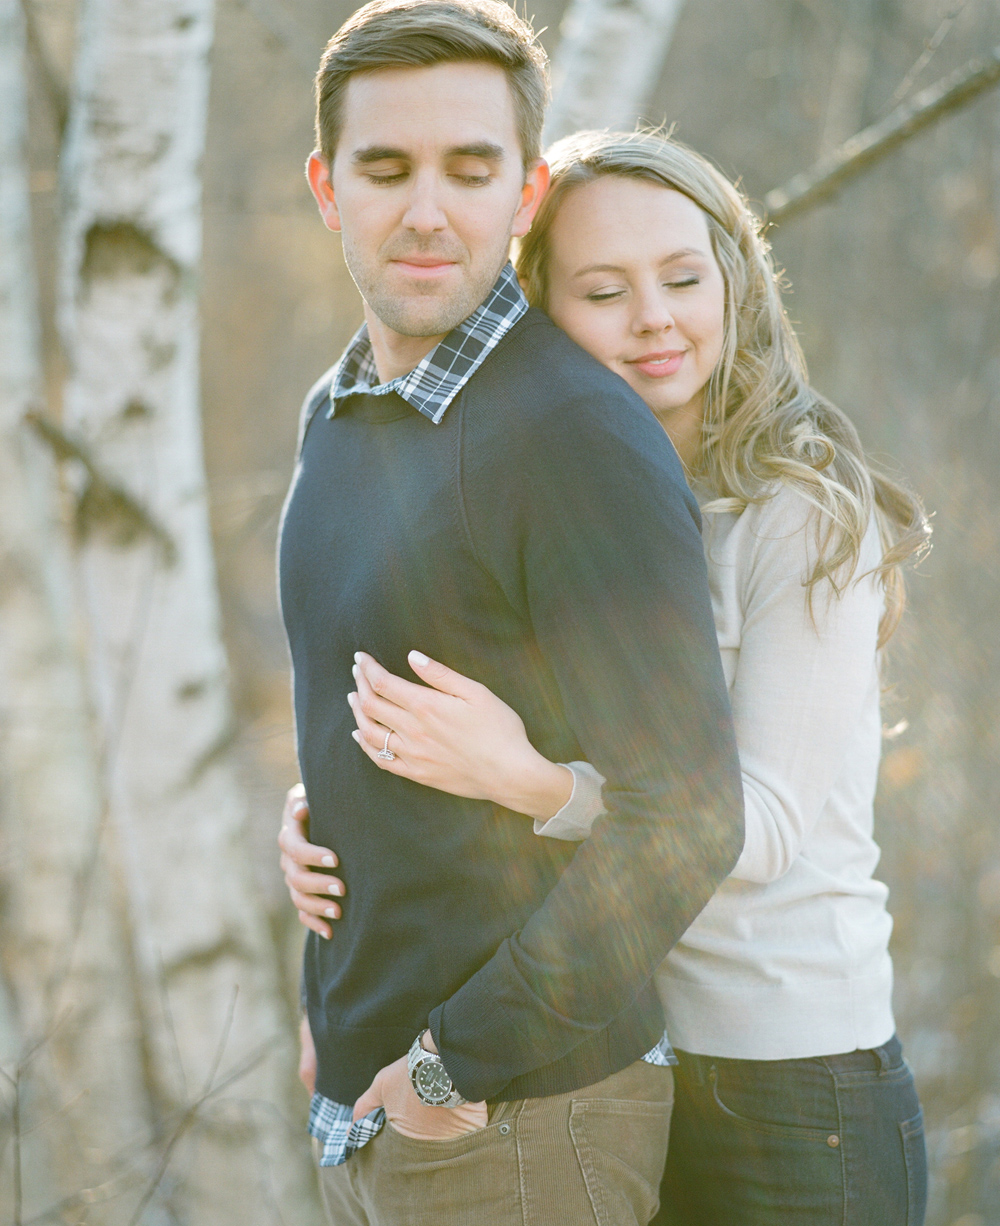 Wausau_Engagement_Photographers_013.jpg